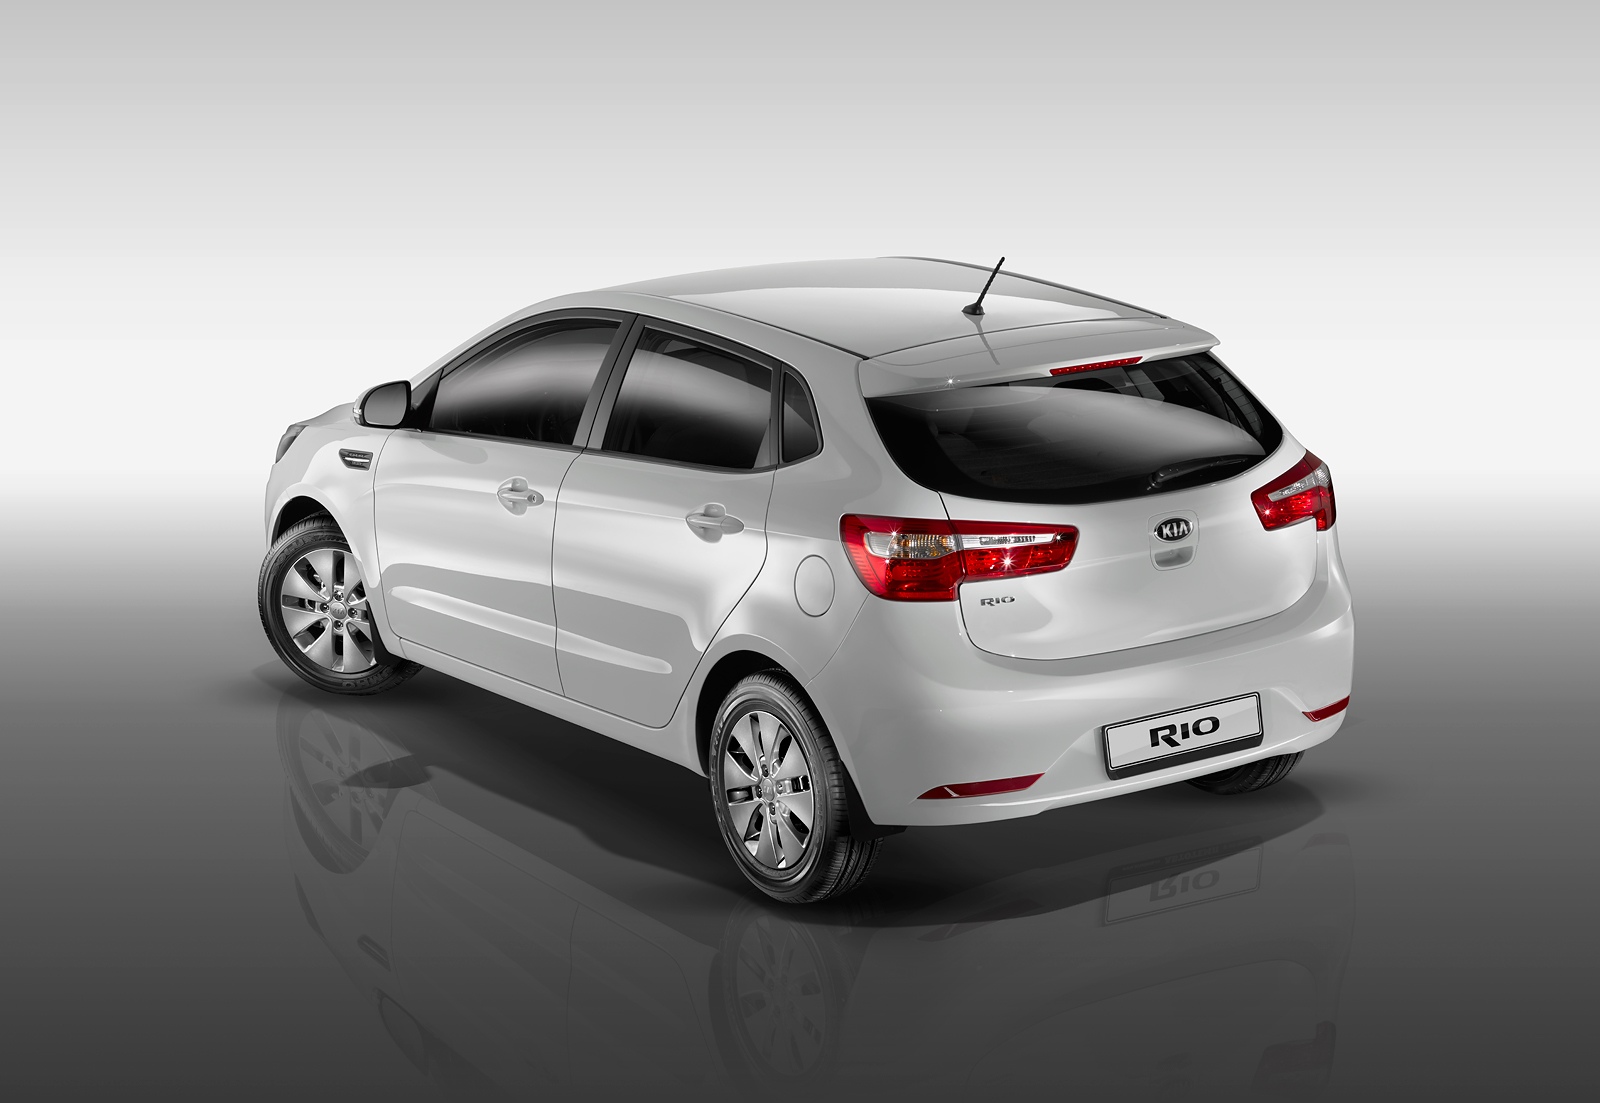 2016 kia rio iii hatchback pictures information and specs auto. Black Bedroom Furniture Sets. Home Design Ideas